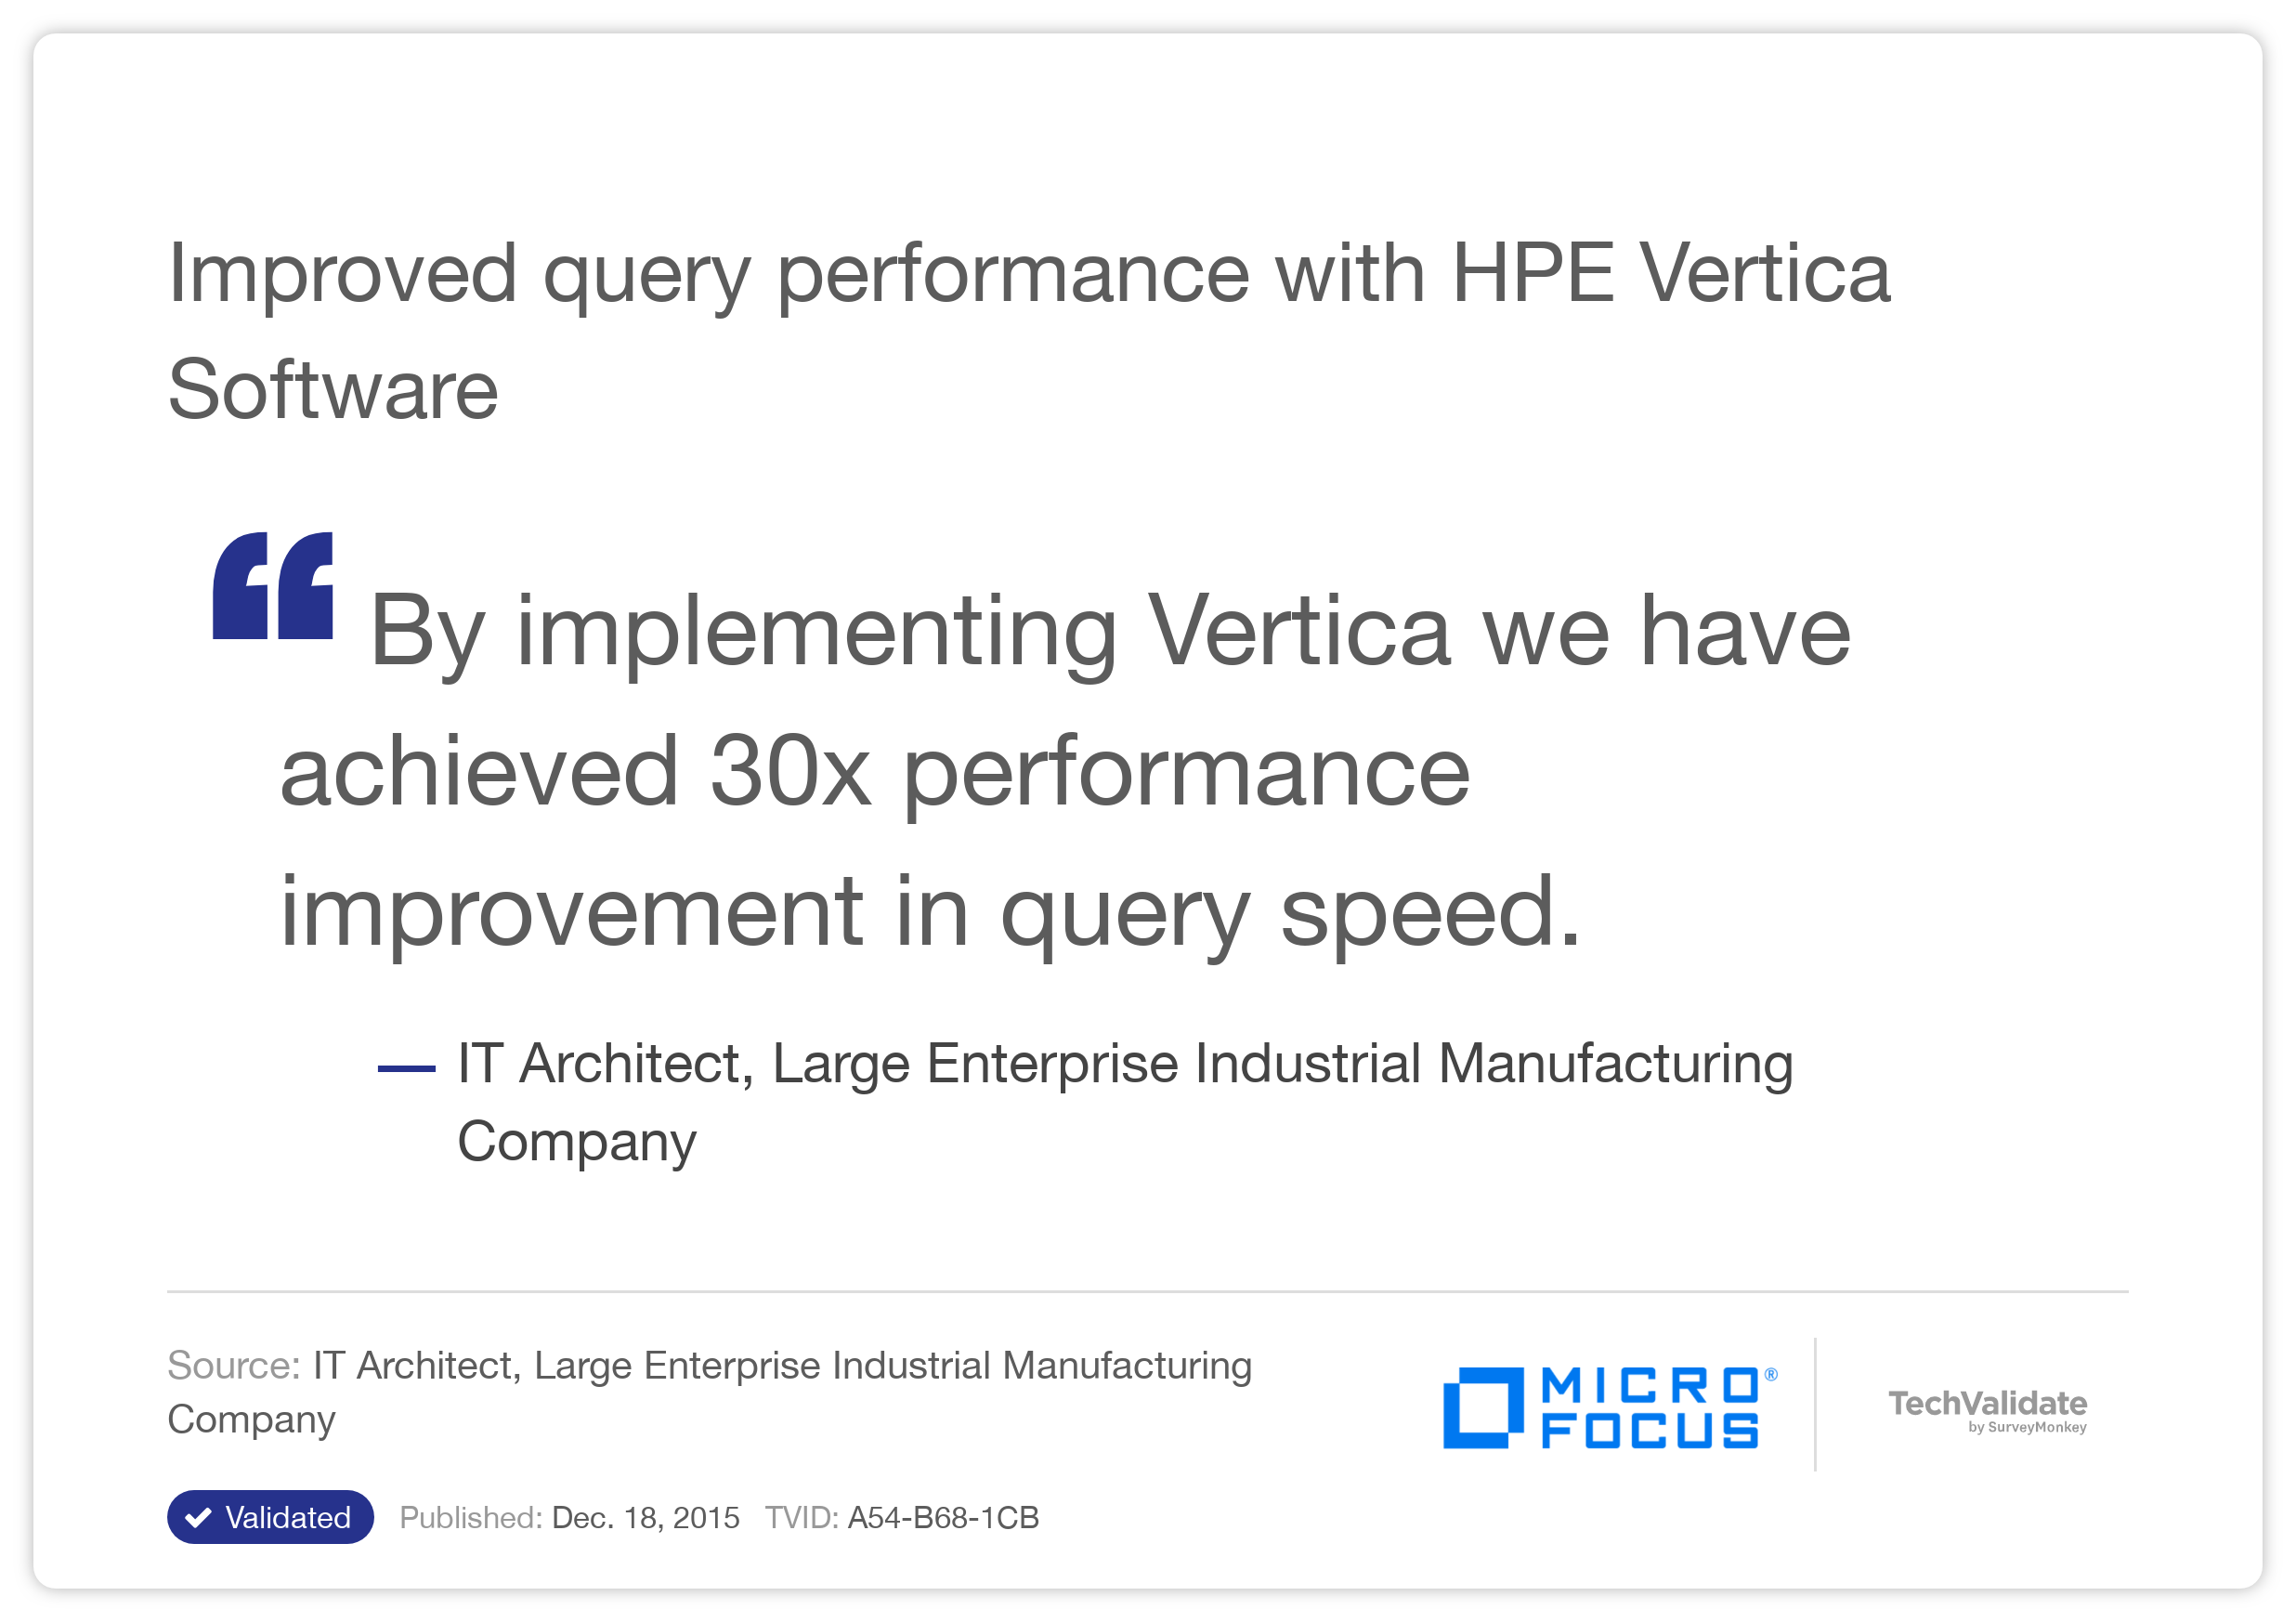 Improved query performance with HP Vertica Software